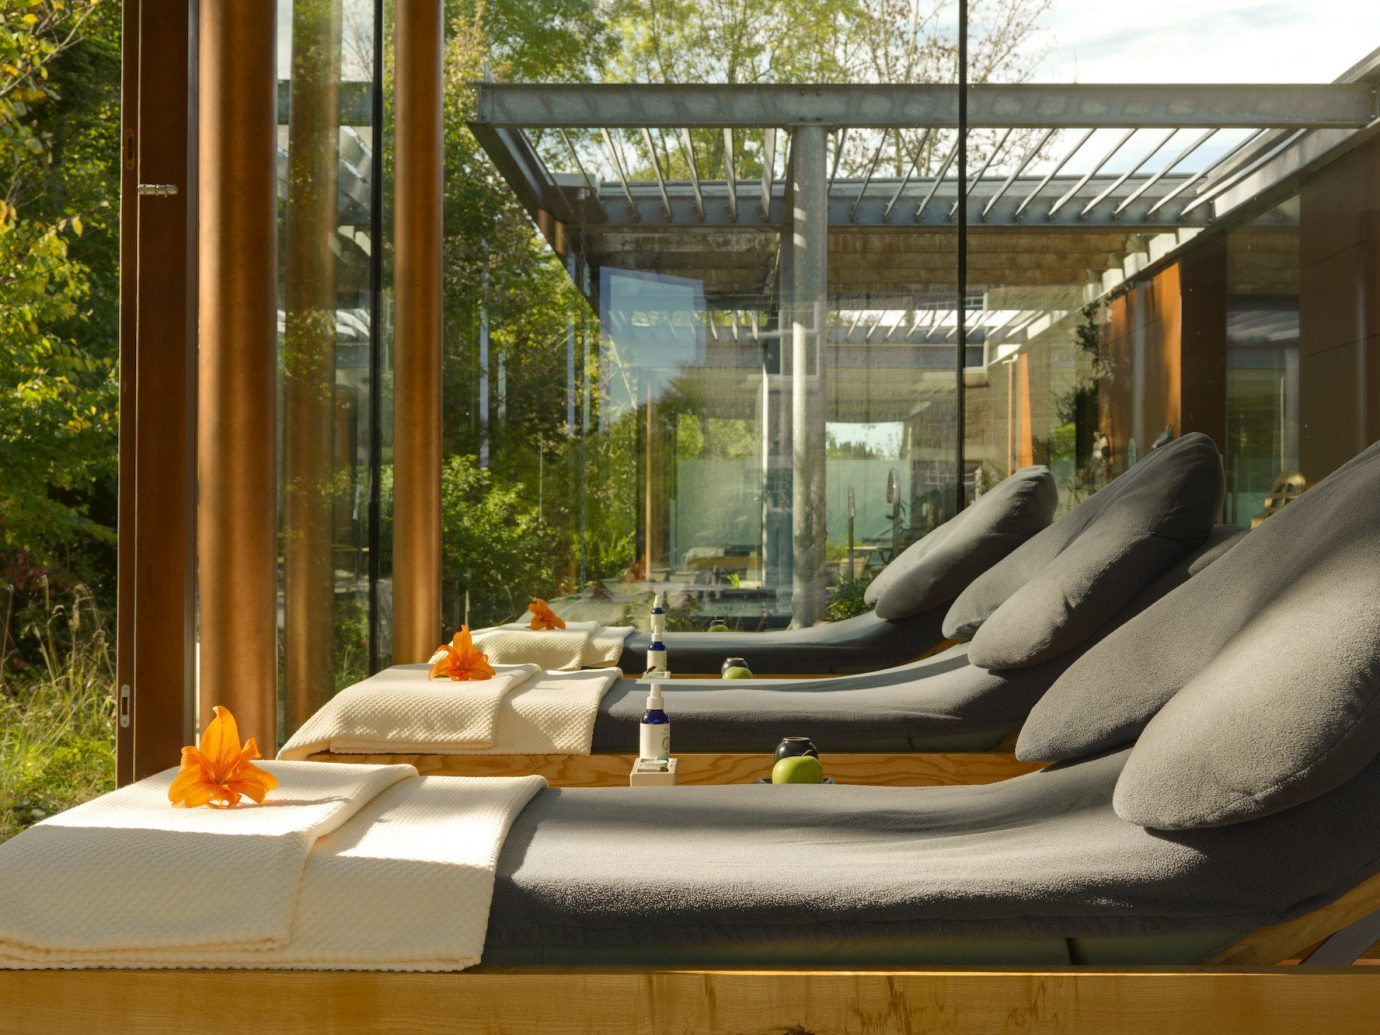 Spa at Park Hotel Kenmare in Ireland